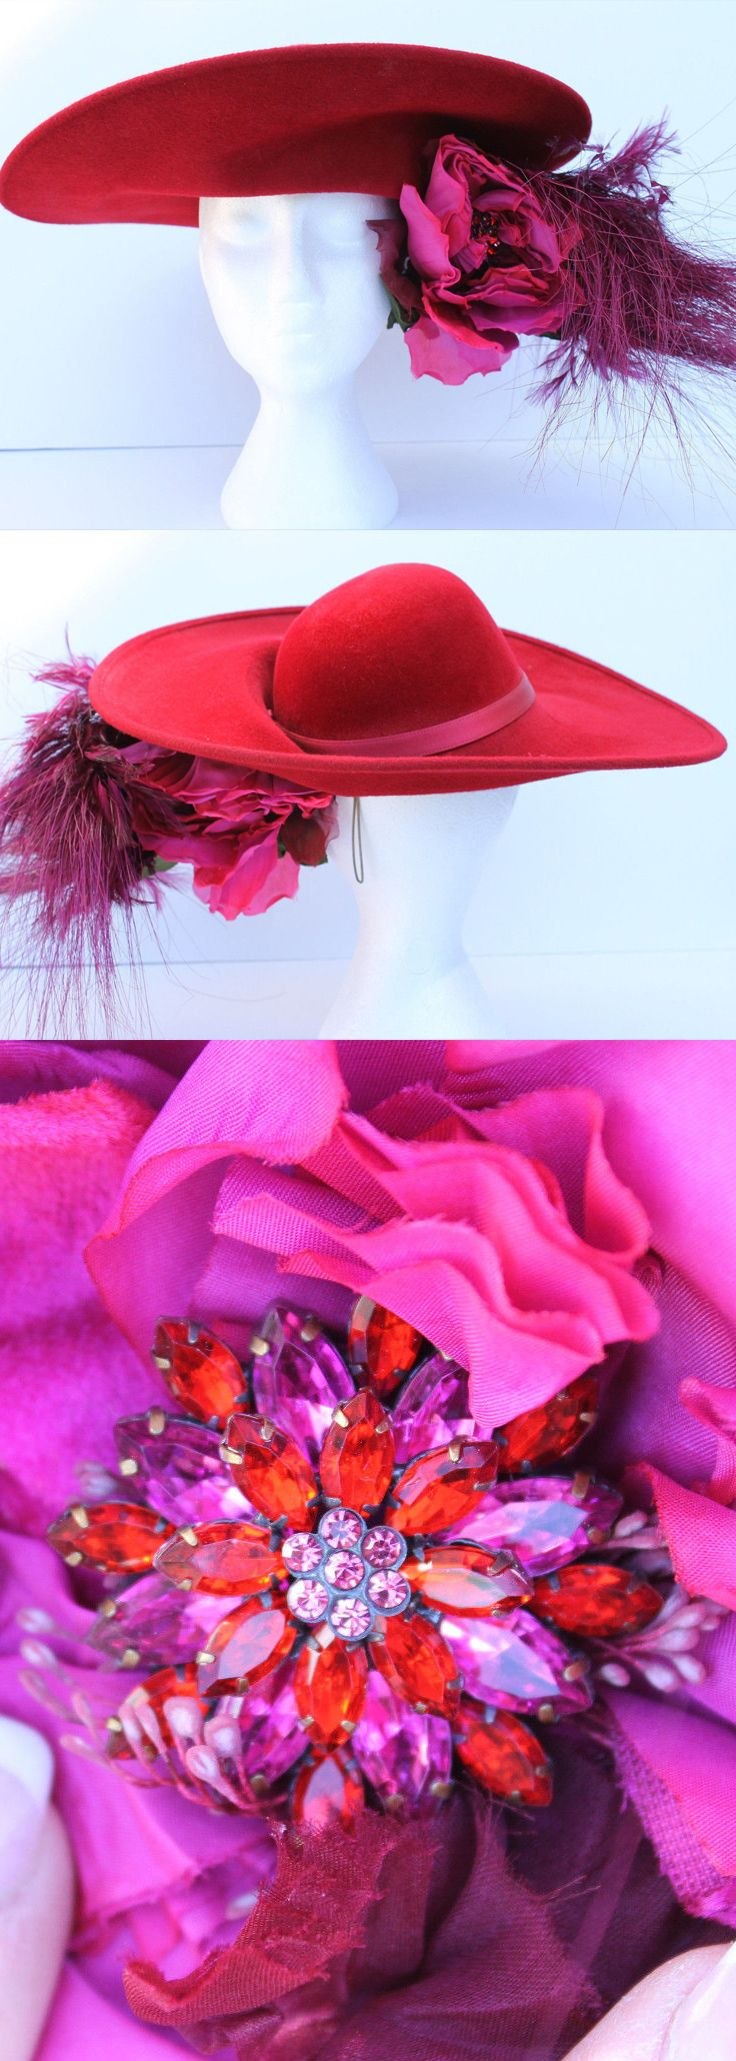 Preloved now on Ebay, Philip Treacy Large Floral and Feathered Hat with in Reds and Pinks. Kentucky Derby Big Hats outfits ideas. Second Hand Philip Treacy Hat. #kentuckyderby #derbyhats #kentuckyderbyhats #motherofthebride #racingfashion #philiptreacy #philiptreacyhats #weddinghats #weddings #summerfashion #fashion #promotion #ebayfinds